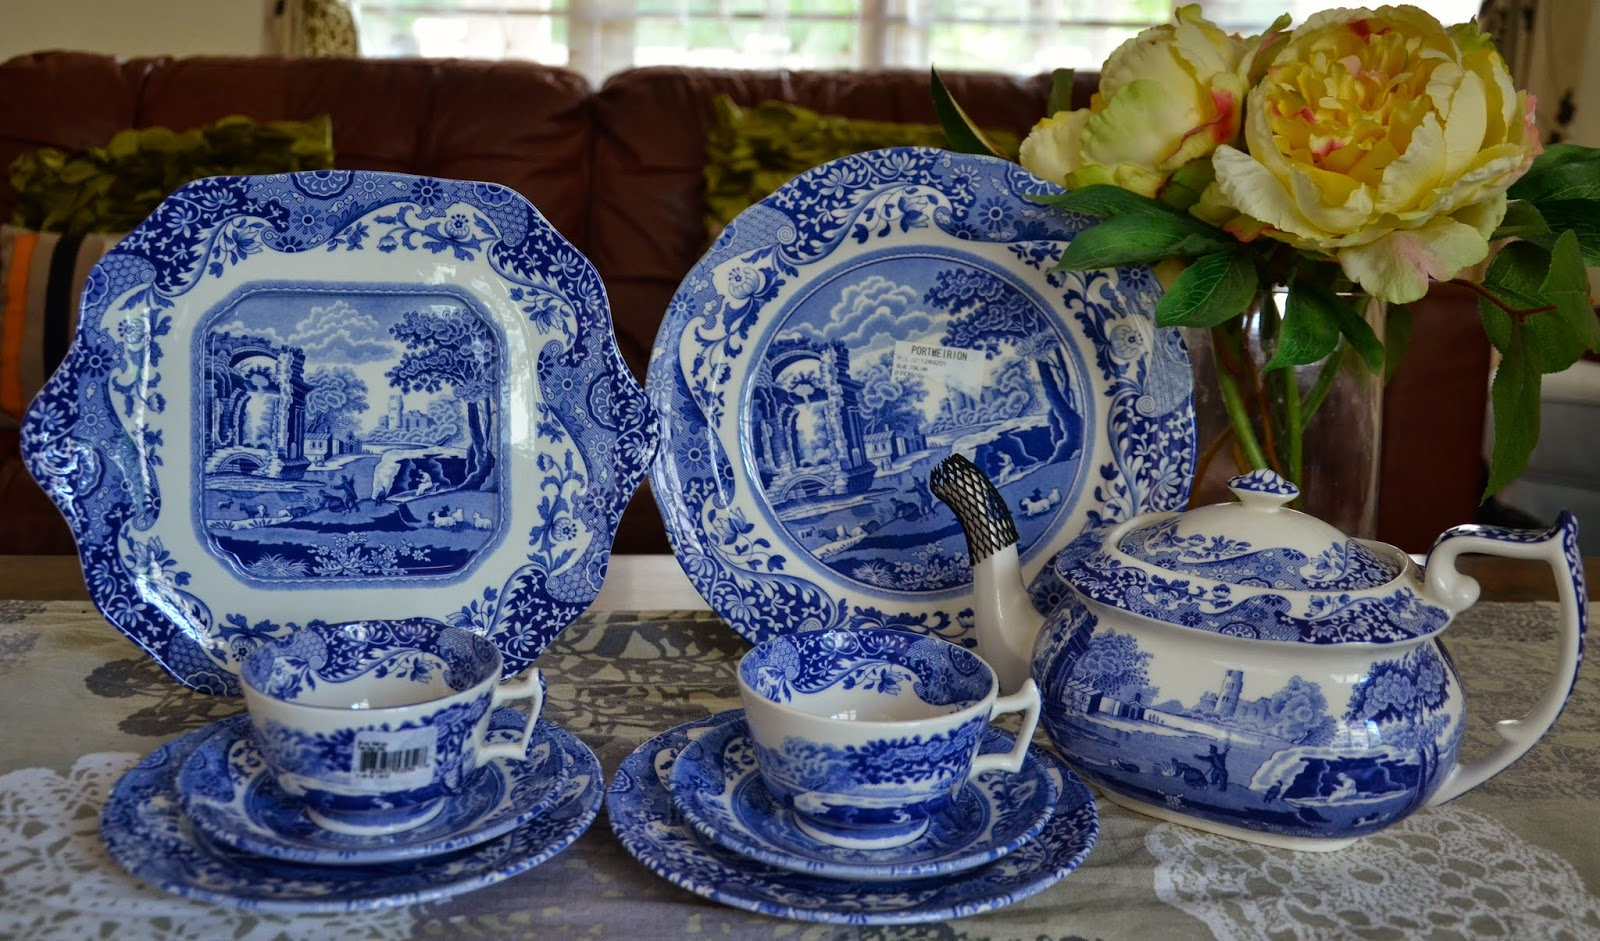 SPODE Blue Italian Tea Set and Dinner Plates & Kitch u0027nu0027 Chic: SPODE Blue Italian Tea Set and Dinner Plates